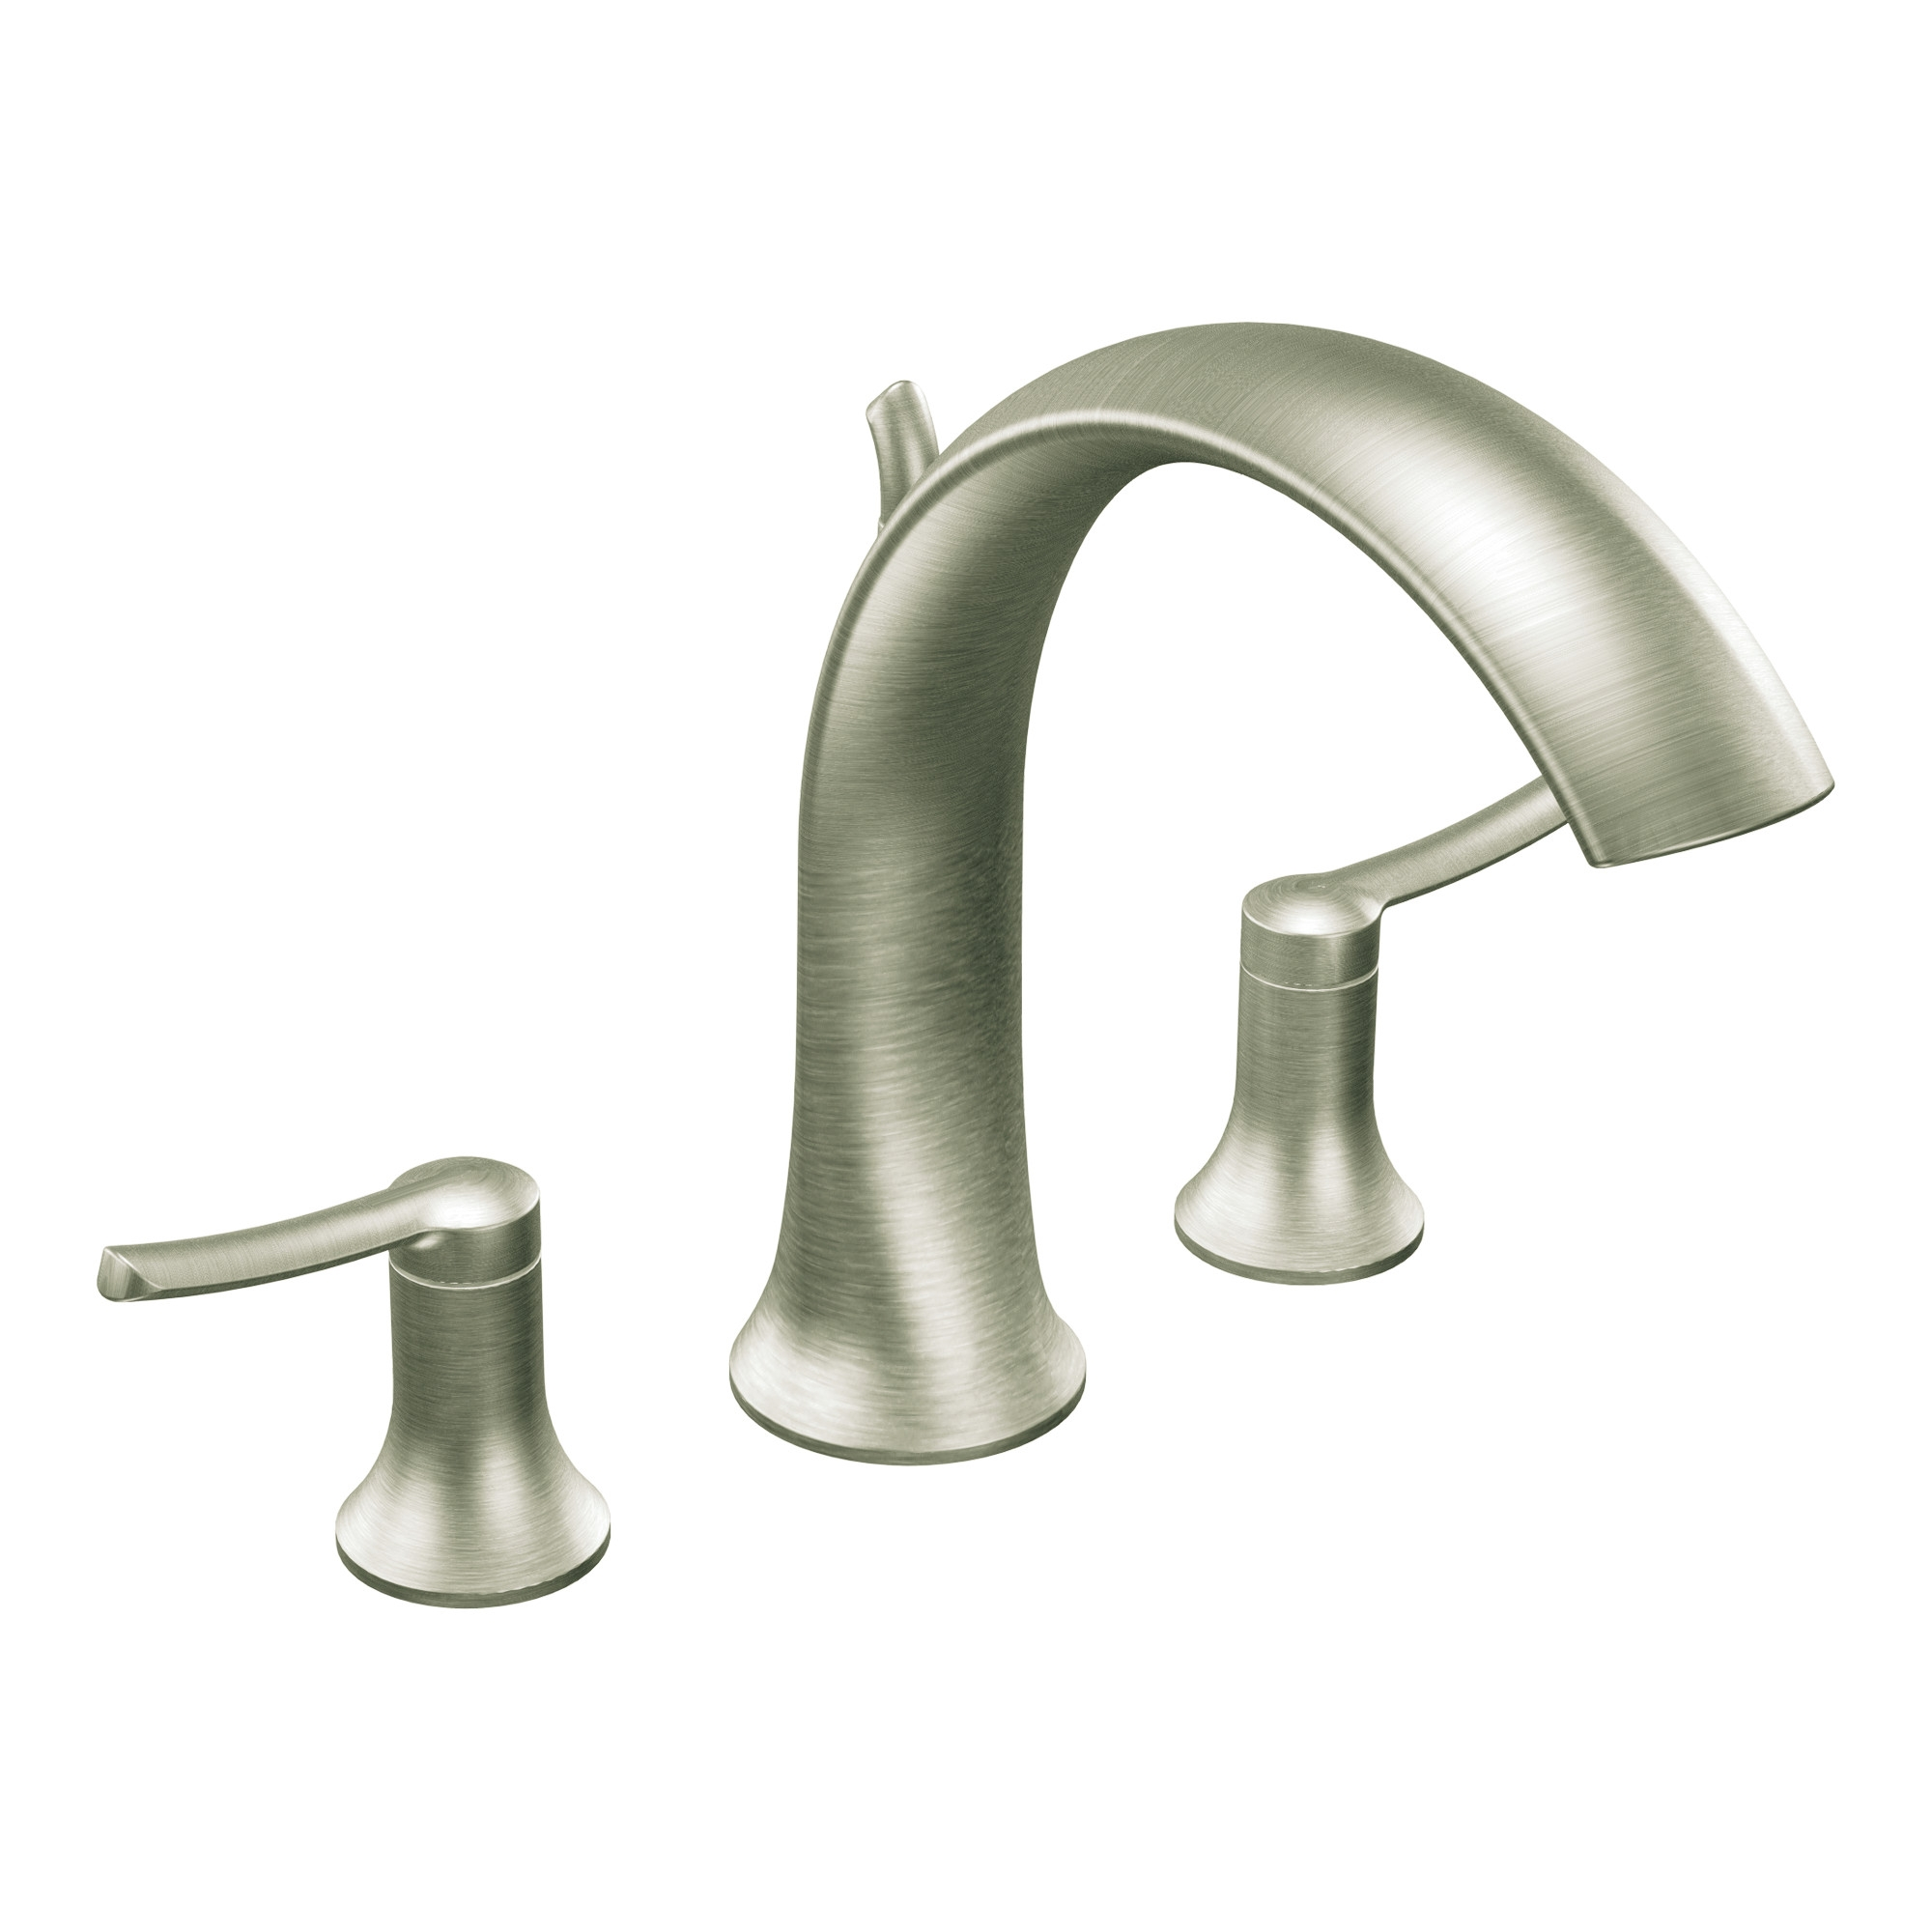 Ideas, decorating using wondrous moen faucets for modern kitchen with regard to dimensions 2000 x 2000  .